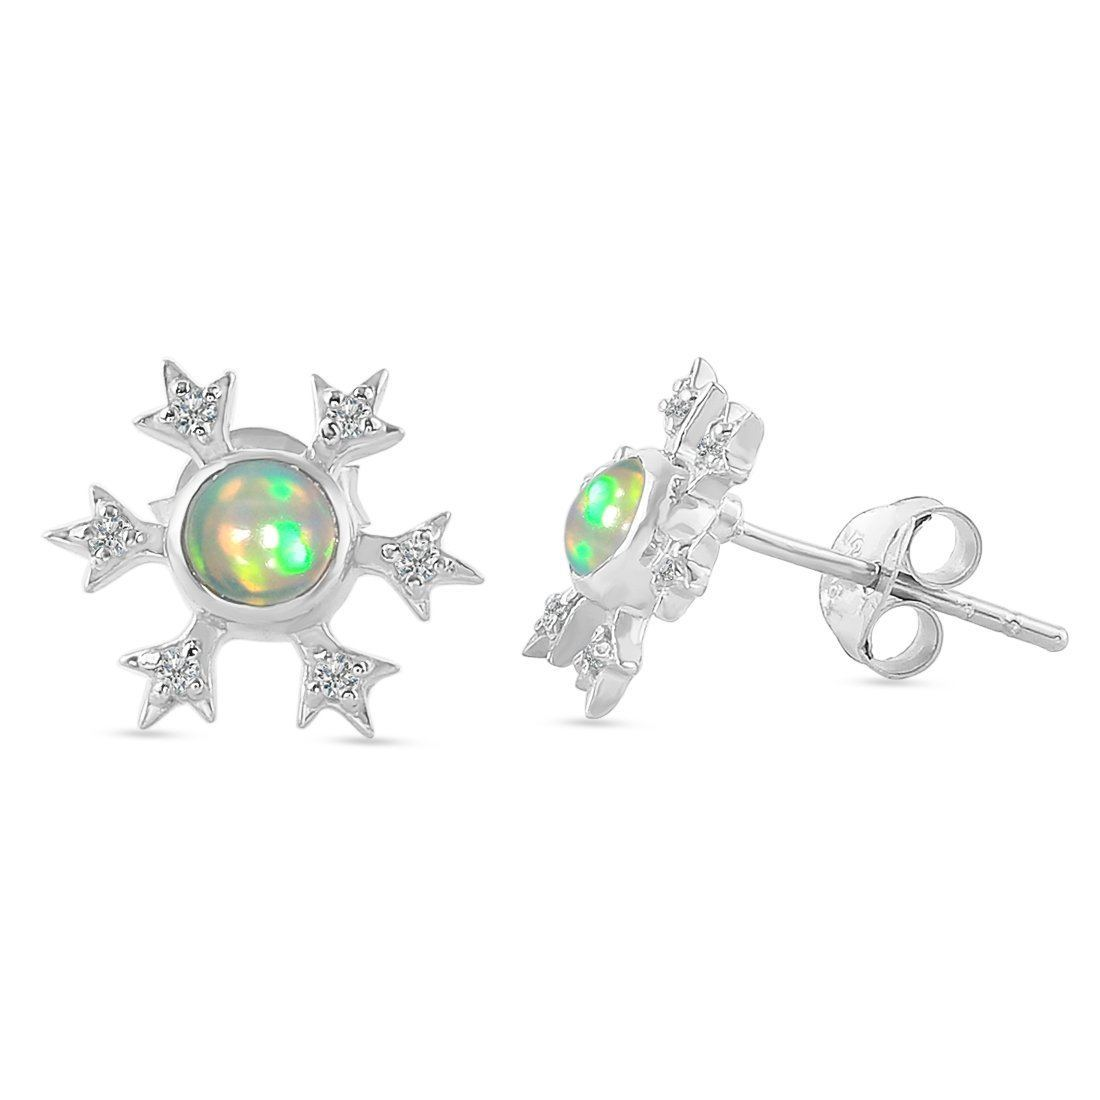 Sterling Silver Earrings With Opal Stone